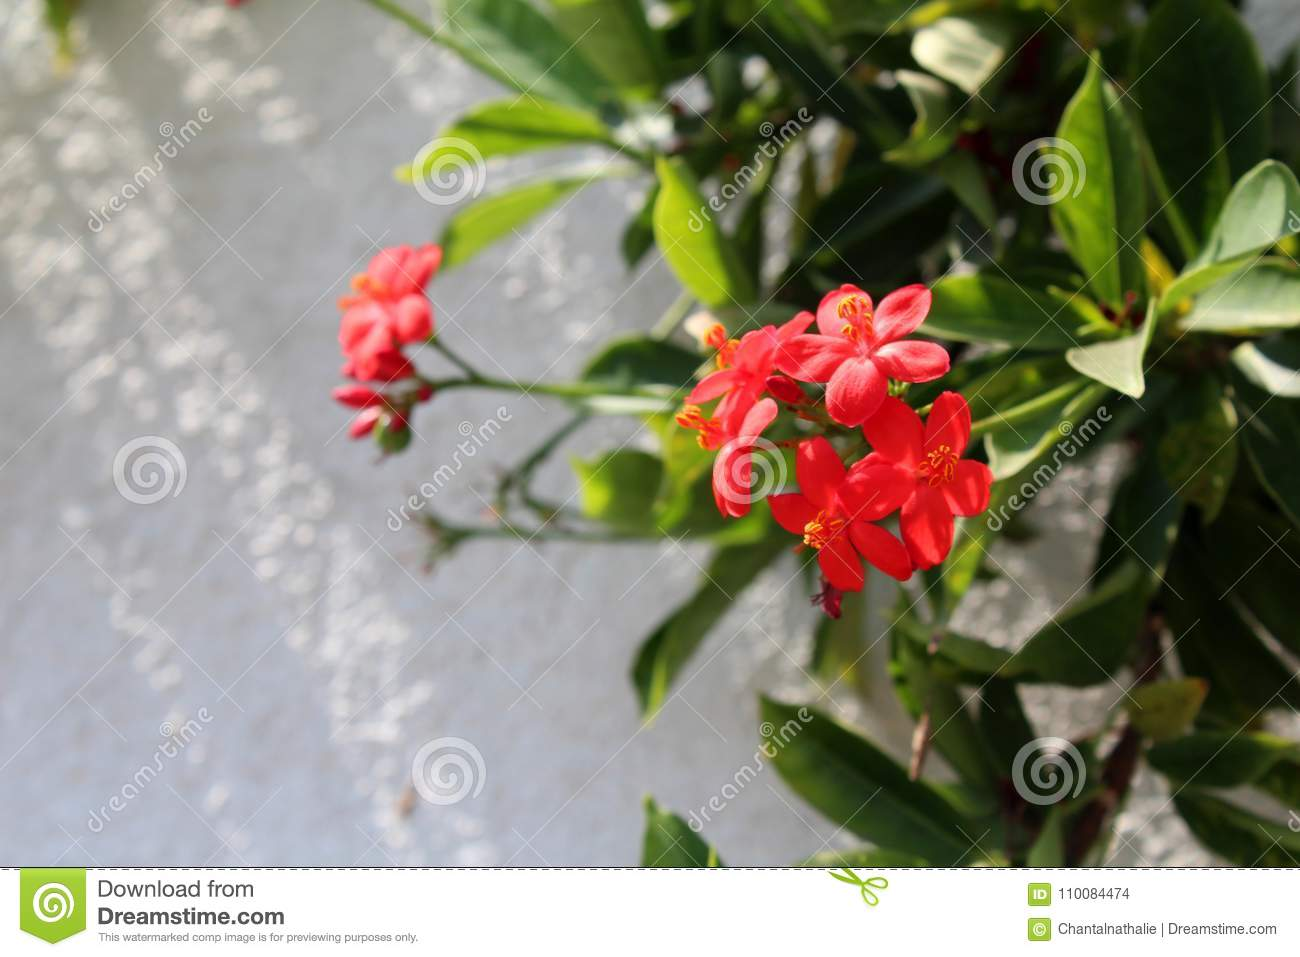 Beautiful tropical flowers stock photo image of backdrop 110084474 beautiful ixora flowers growing in the garden on sunny day natural floral background tropical exotic flowers izmirmasajfo